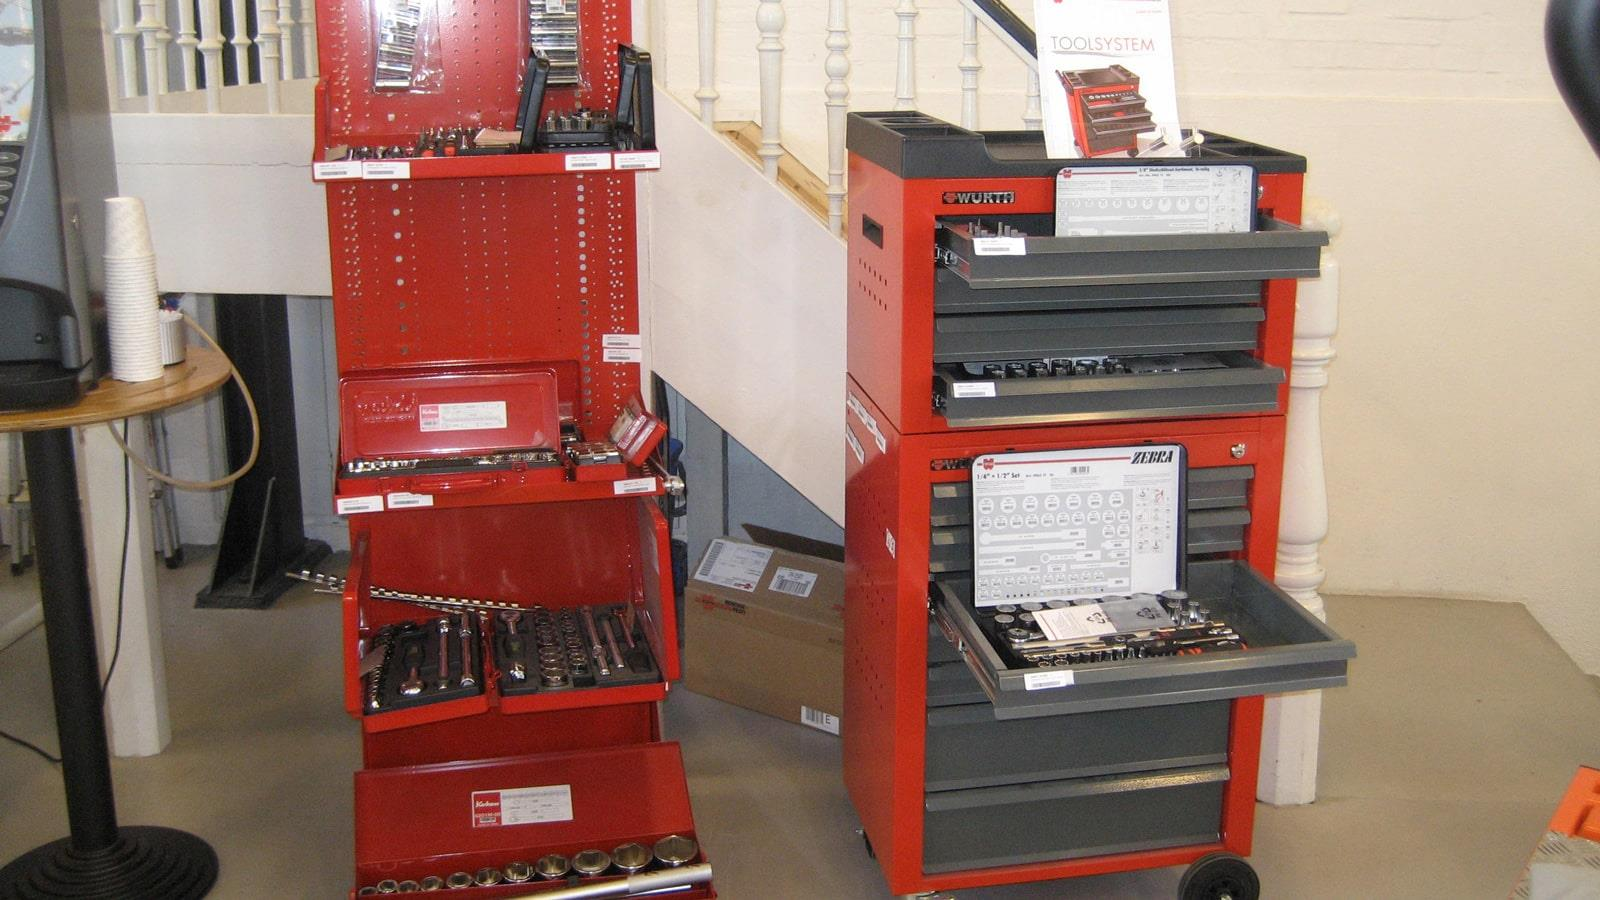 Two Würth tool trolleys next to coffee machine